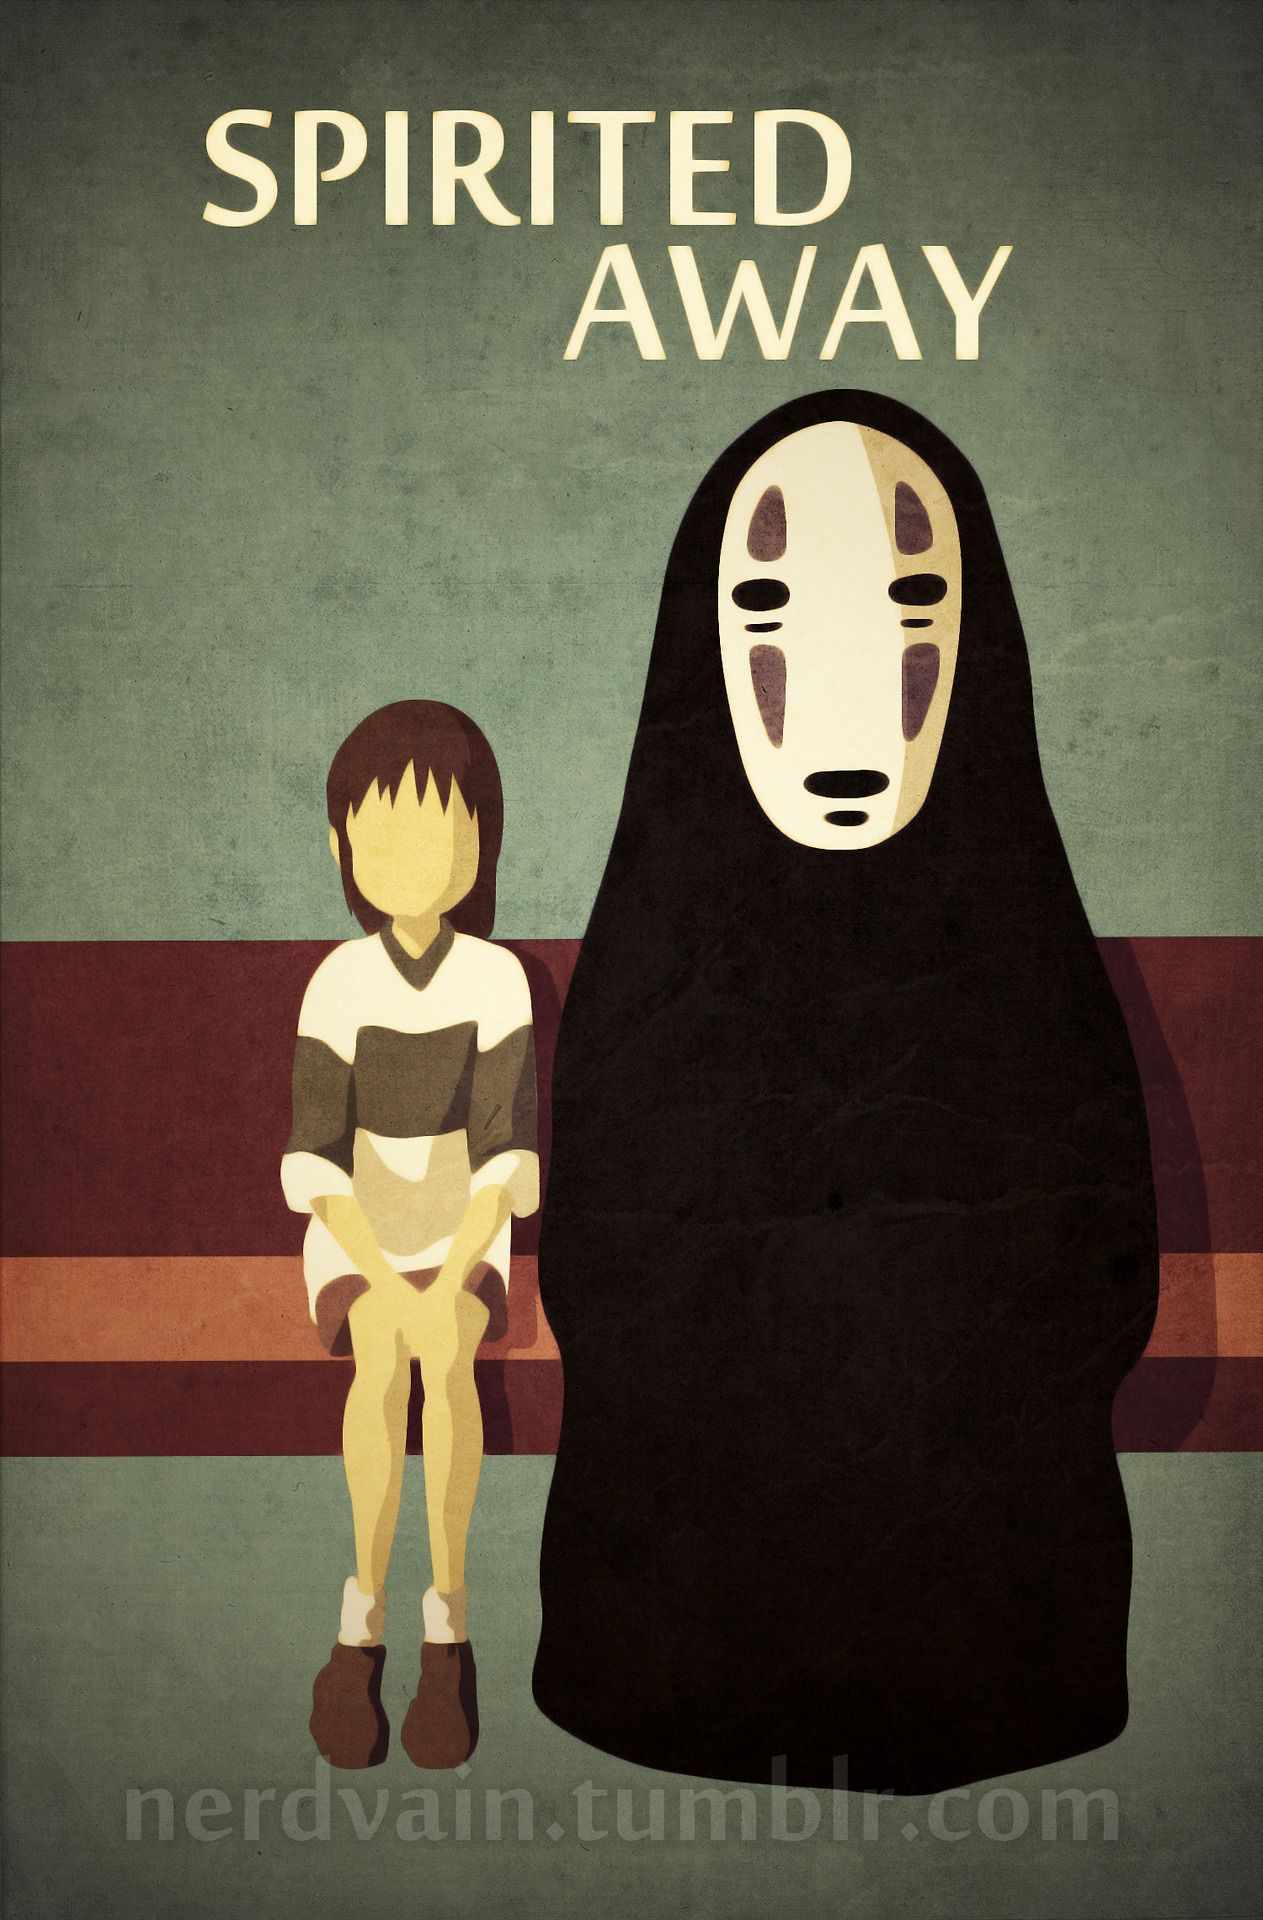 Spirited Away Poster i find it cool that she doesn't